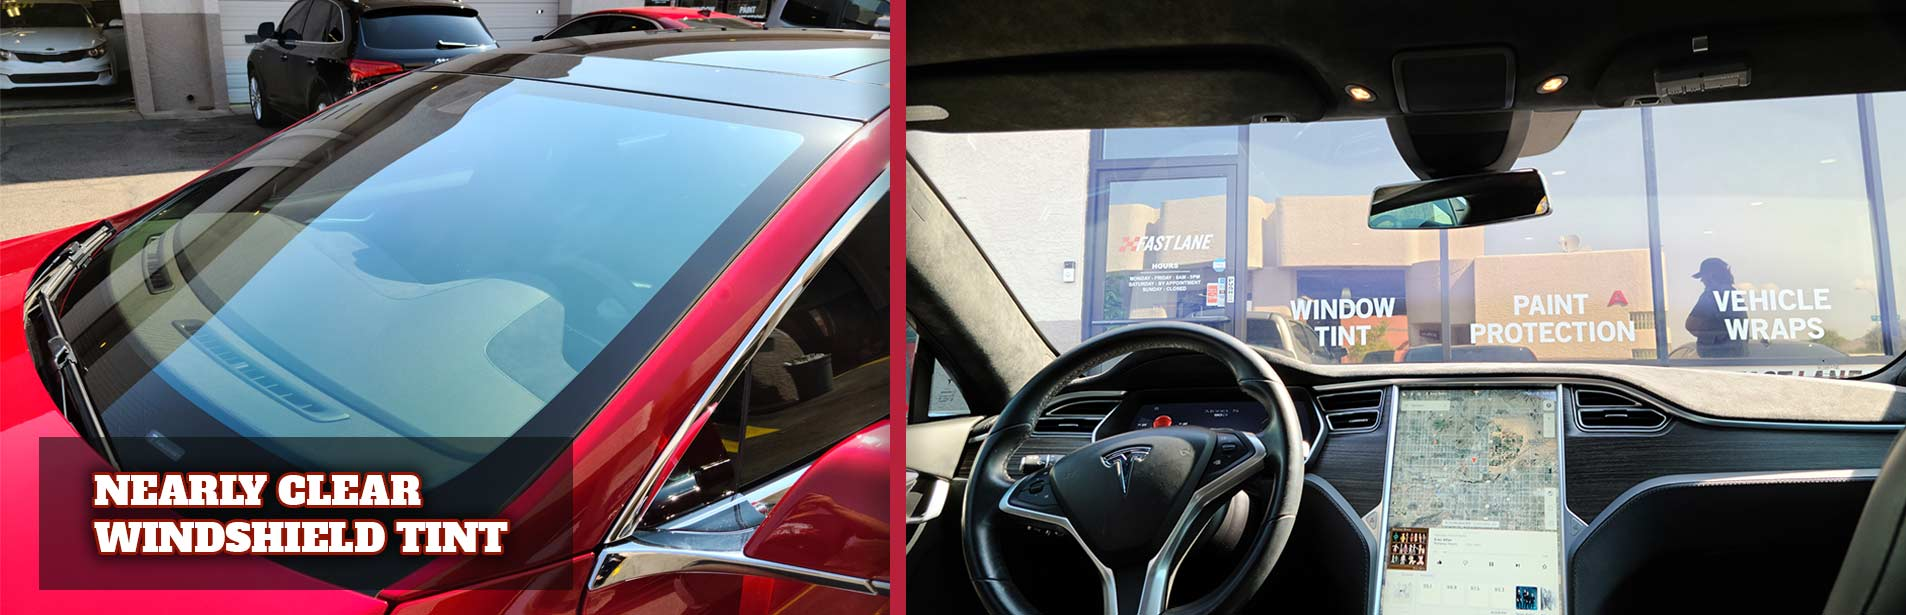 Demonstration of clear windshield tint on a Tesla